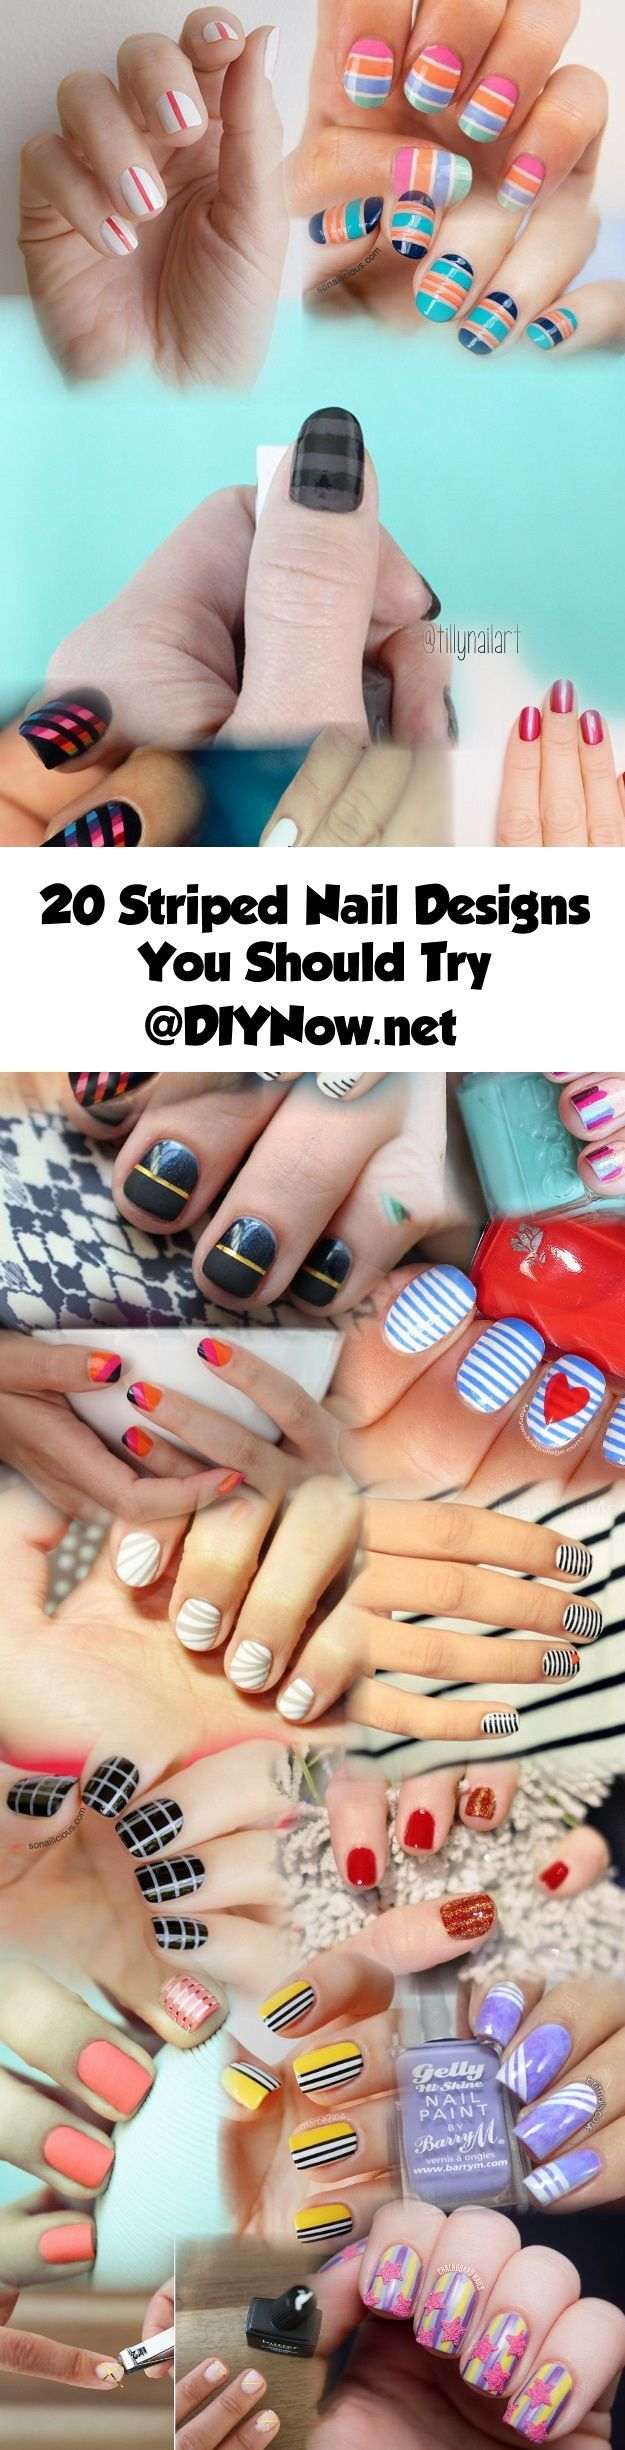 20 Striped Nail Designs You Should Try